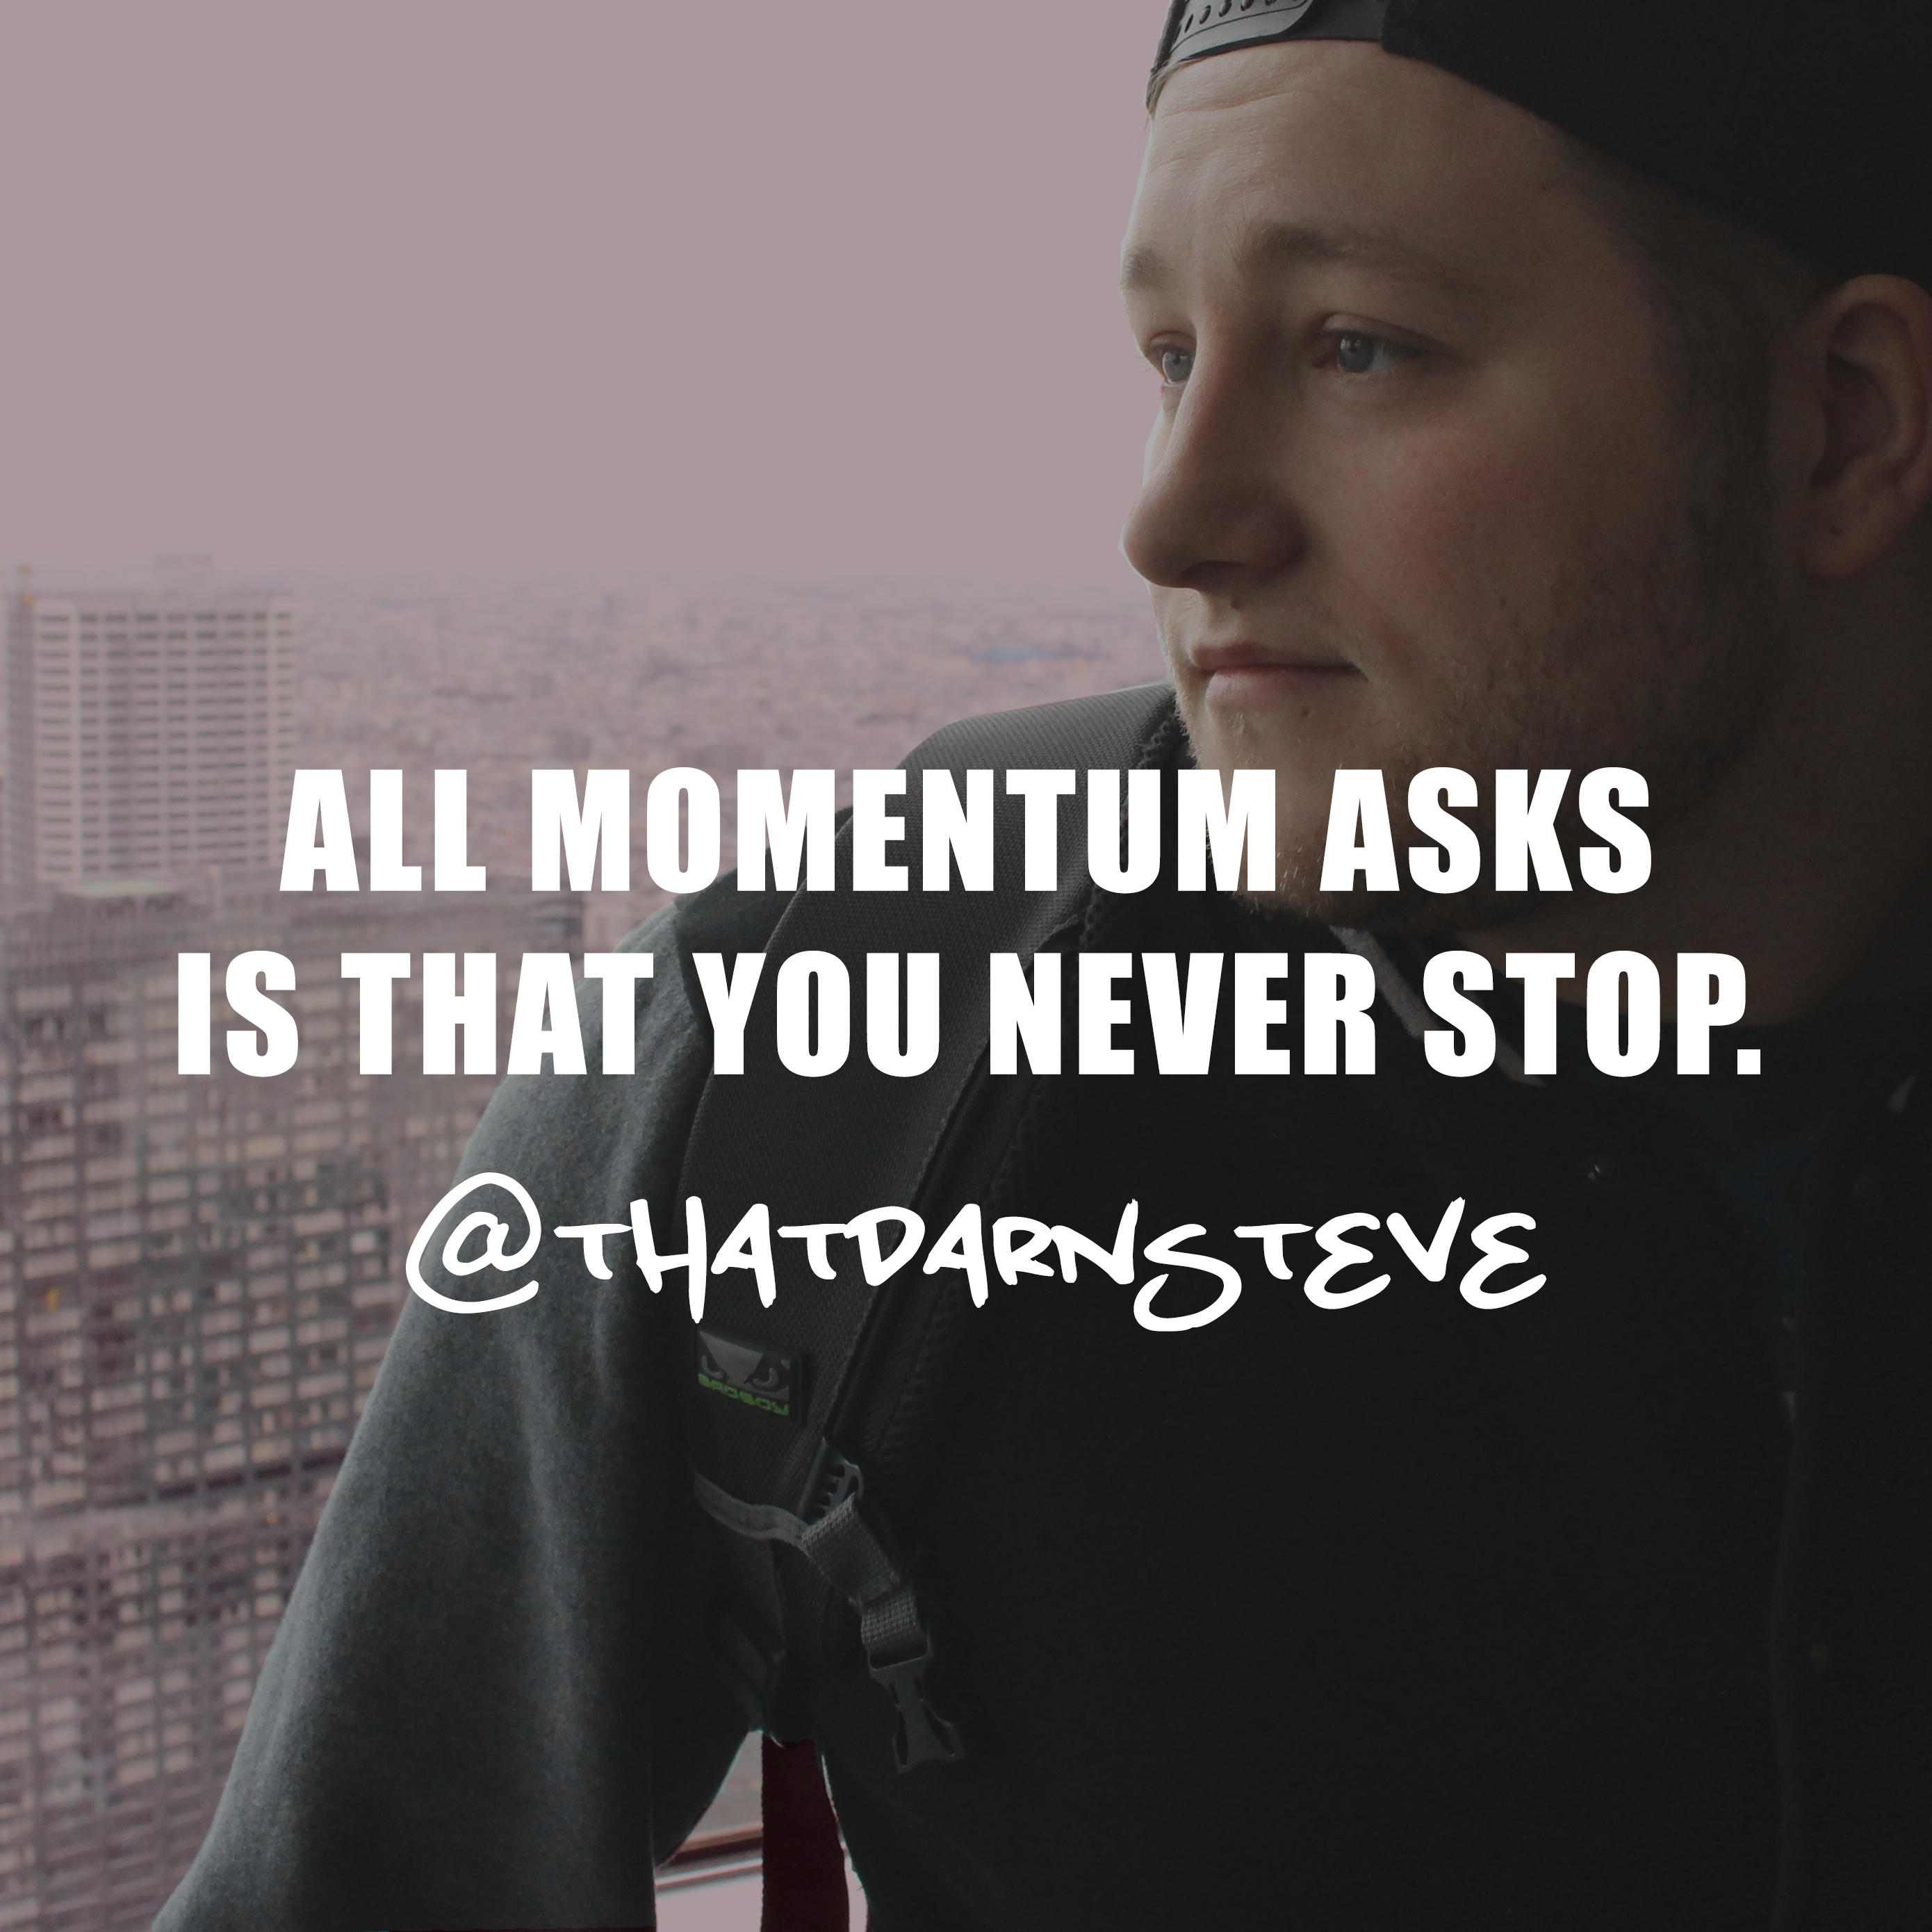 [Image] You want momentum? just don't quit.